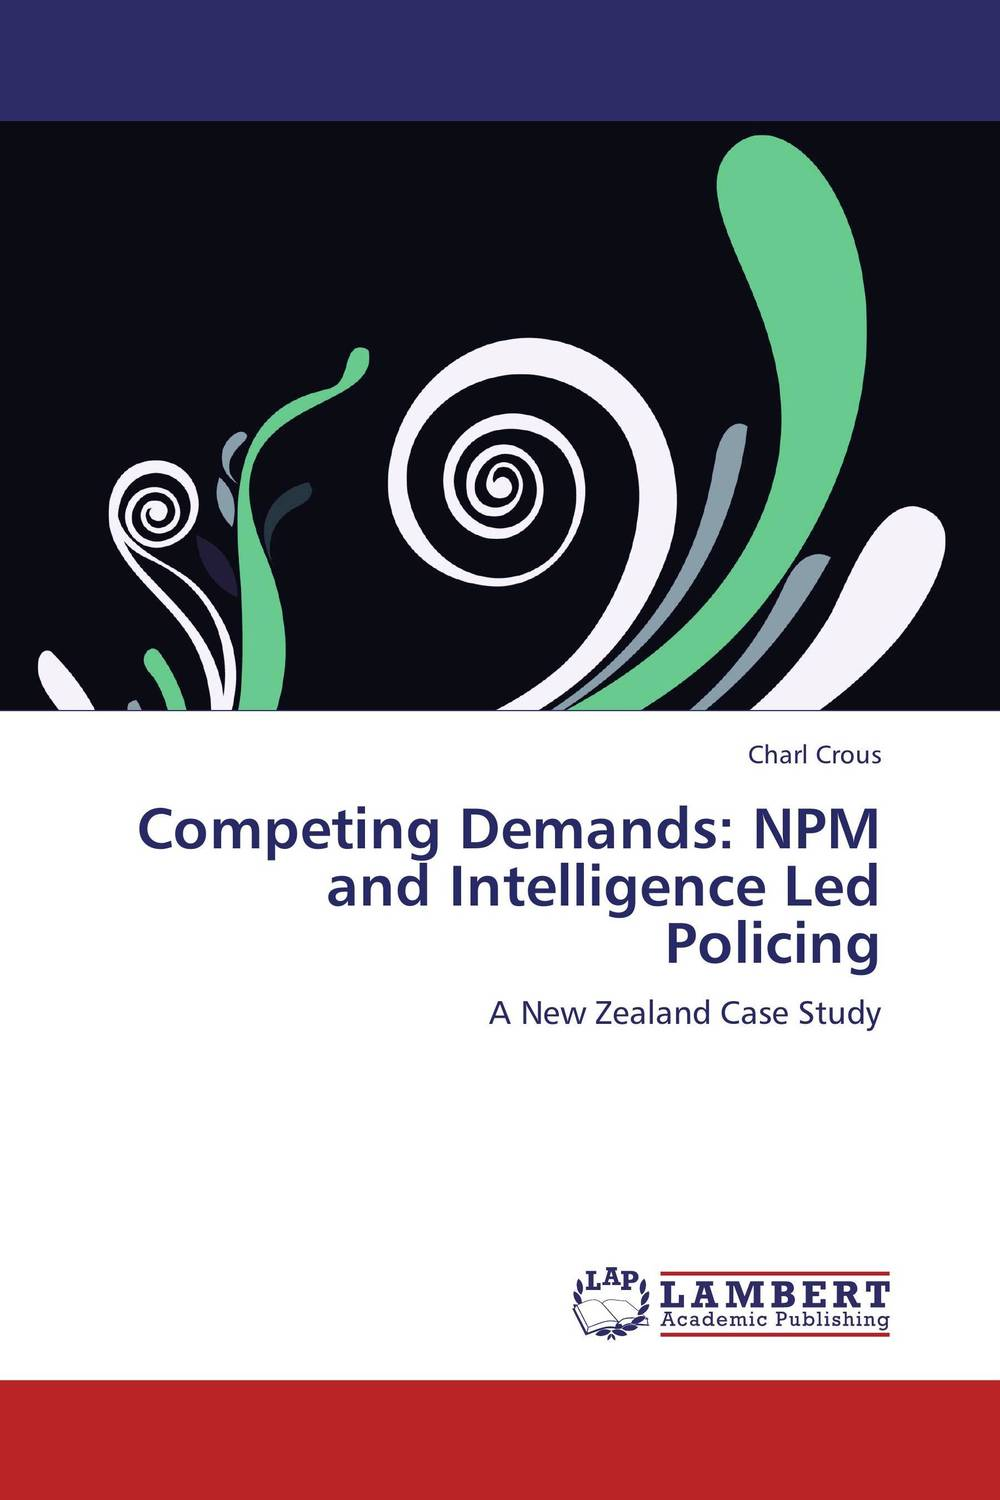 Competing Demands: NPM and Intelligence Led Policing victor e kappeler community policing